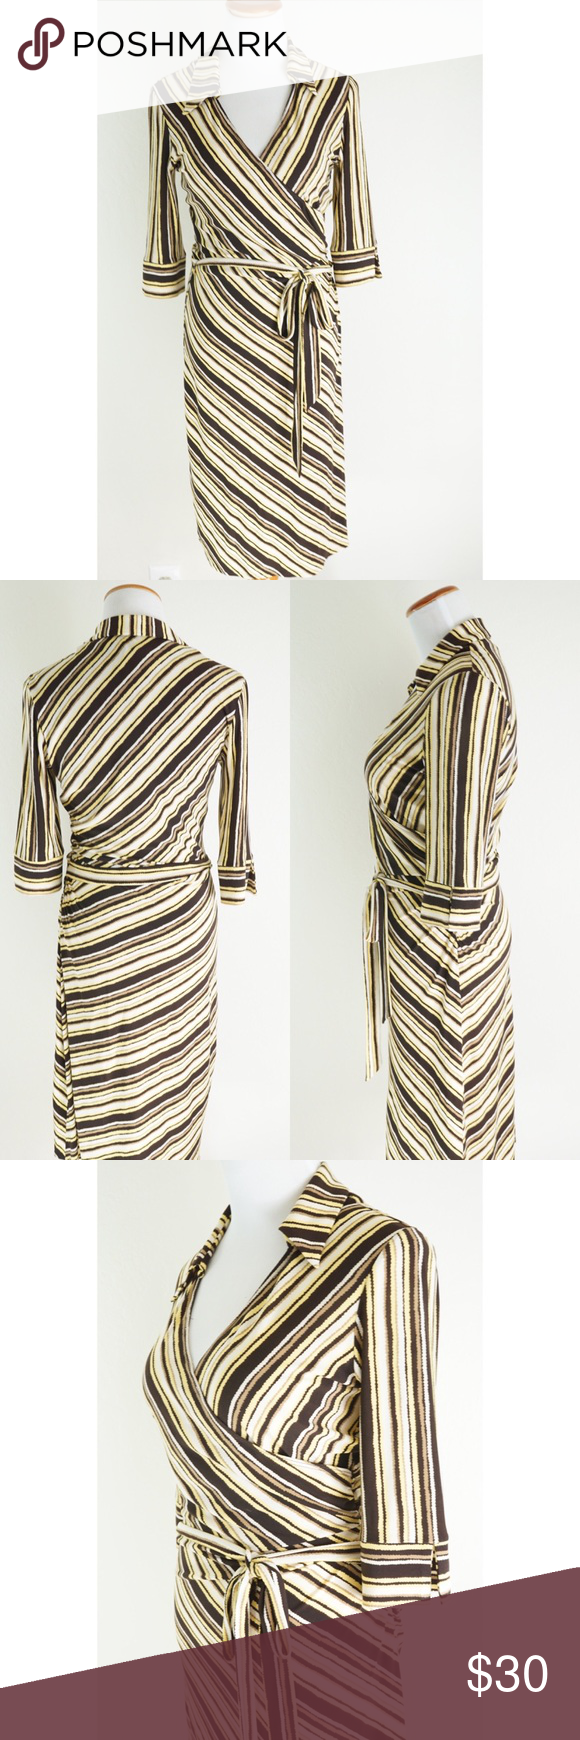 """LAUNDRY Shelli Segal Retro Faux Wrap Dress Cheers to the 60s style woman! Step into class with this collared faux wrap dress from Laundry by Shelli Segal. Yellow and brown toned stripes create a slimming and streamlined look. Tie at waist, and ruching on left side. Sleeves have slit at cuff. Approx flat meas: length 42"""", sleeve 14"""", bust 17"""", waist 13"""", hips 16"""". 98% polyester 4% elasthane.  dry clean. EUC no rips stains or holes. Material is stretchy Laundry by Shelli Segal Dresses"""